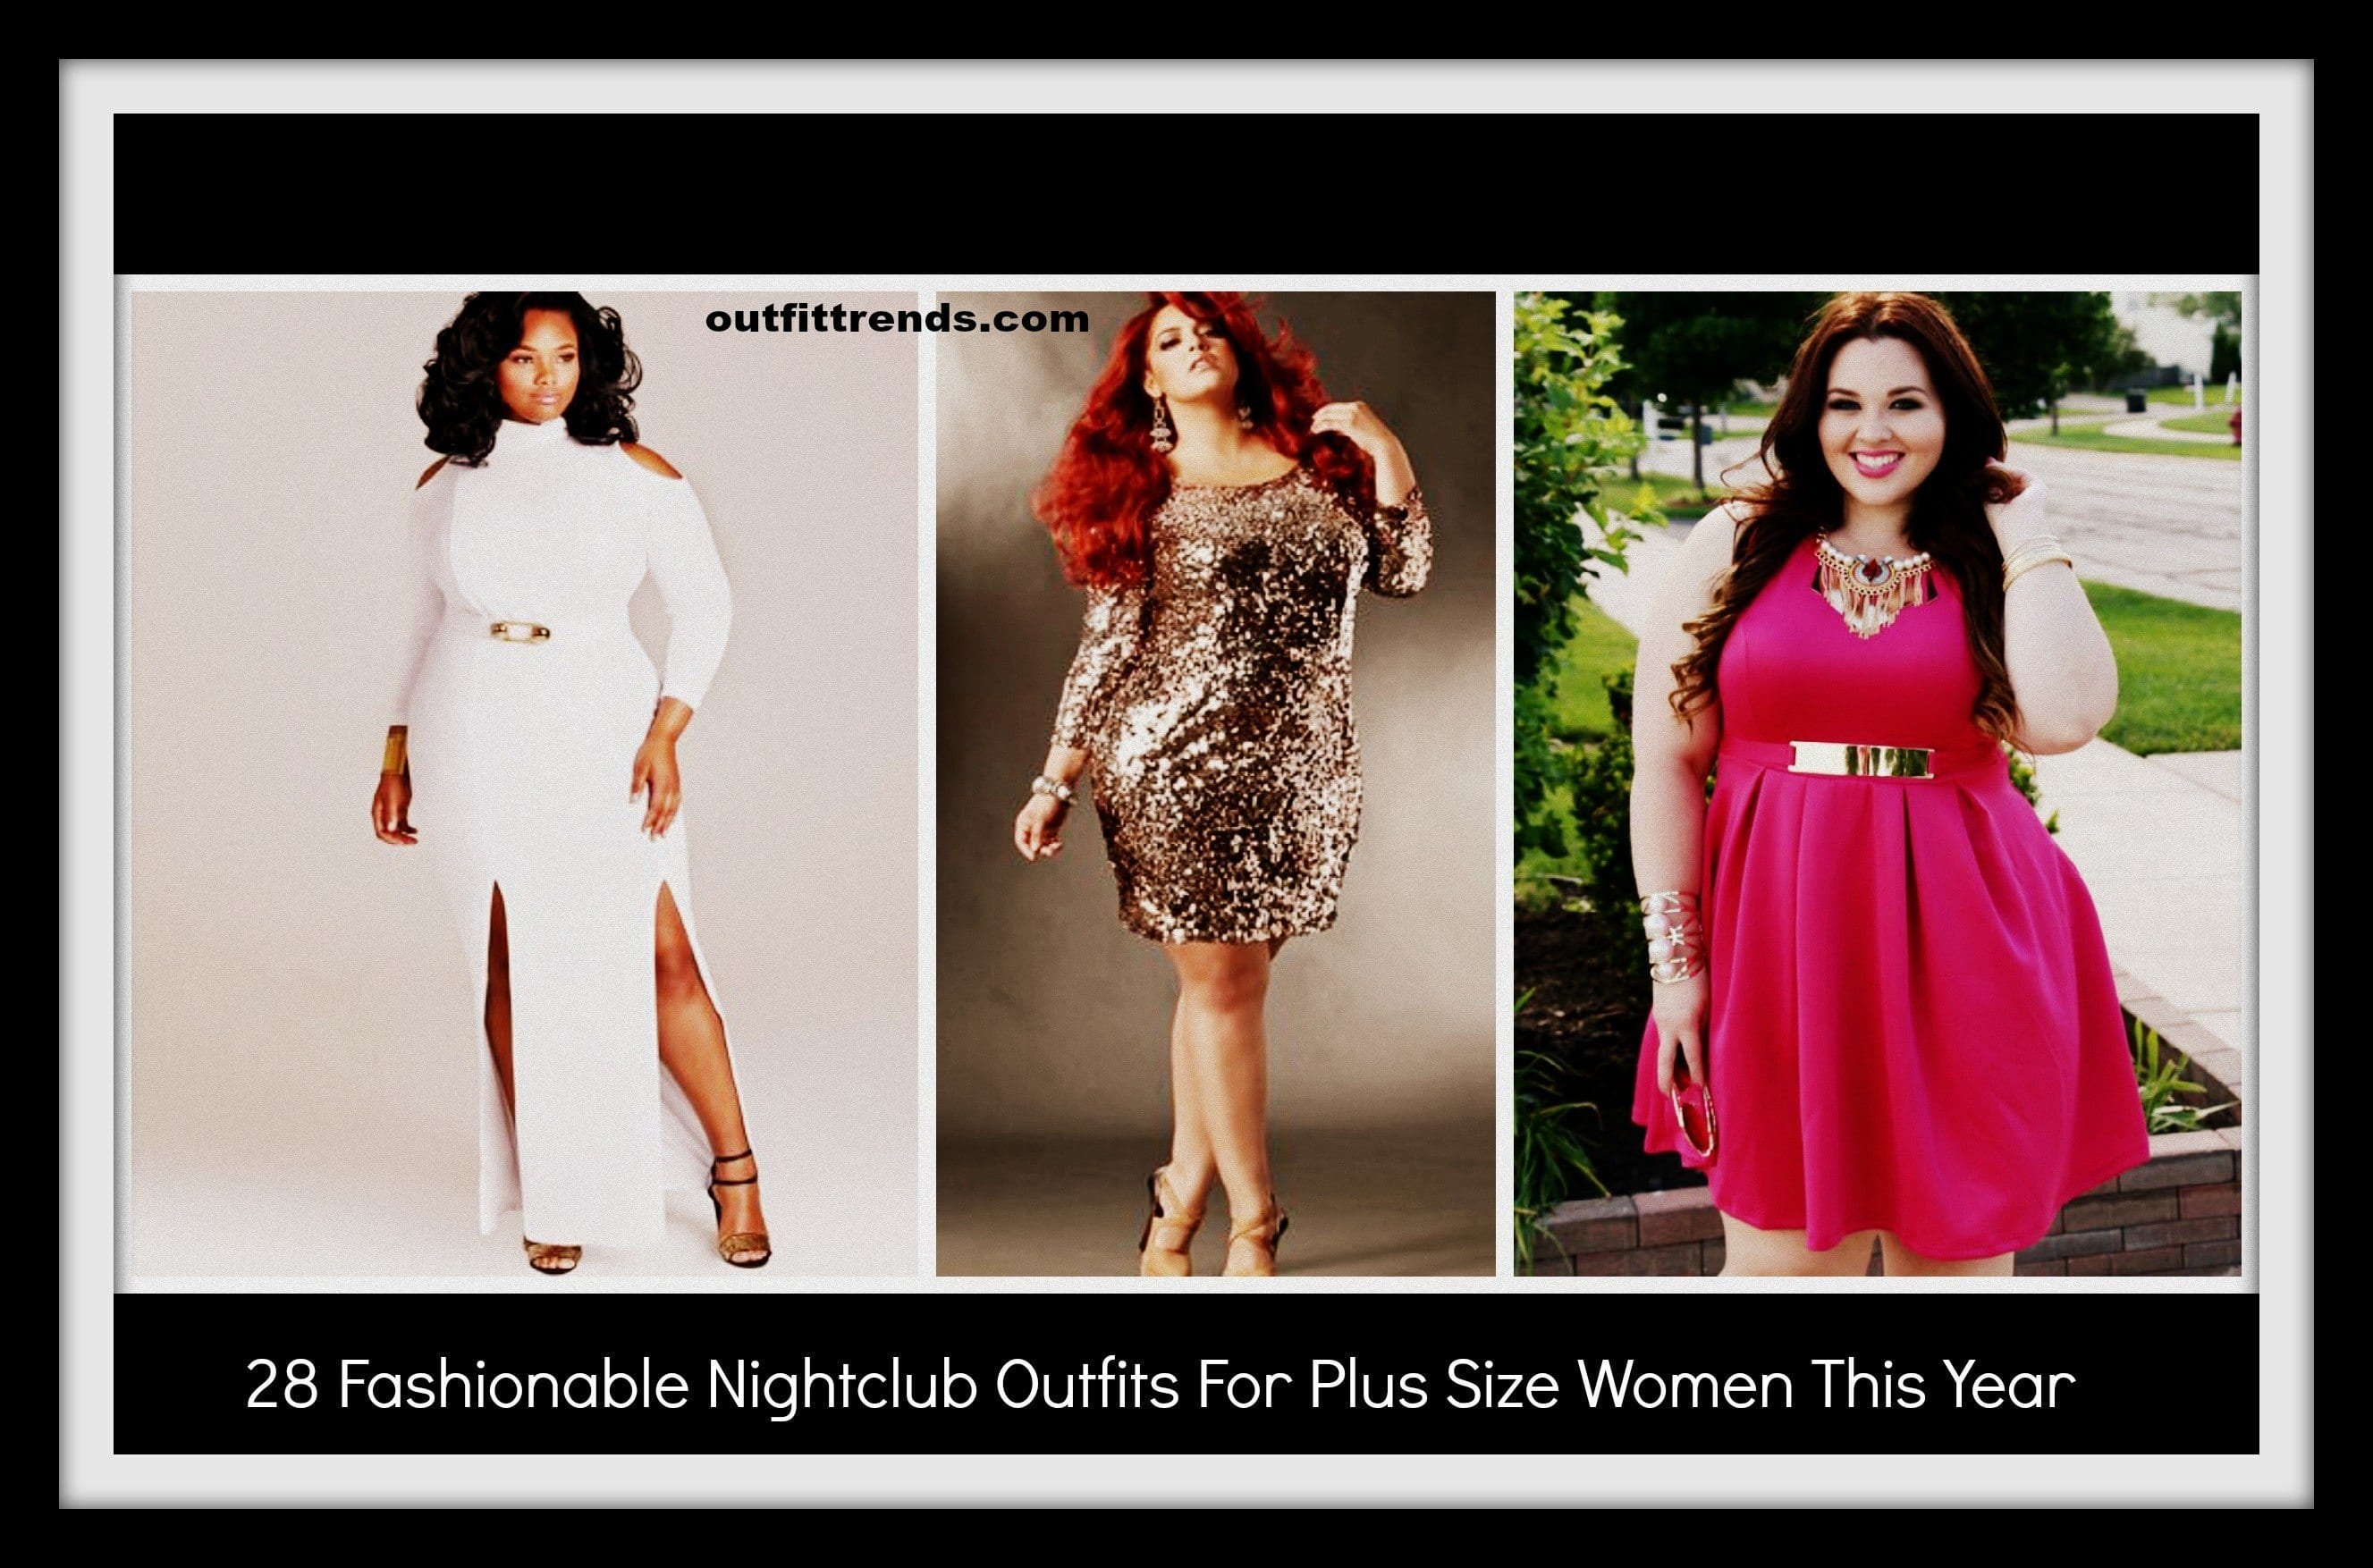 nightclub outfits for plus size ladies